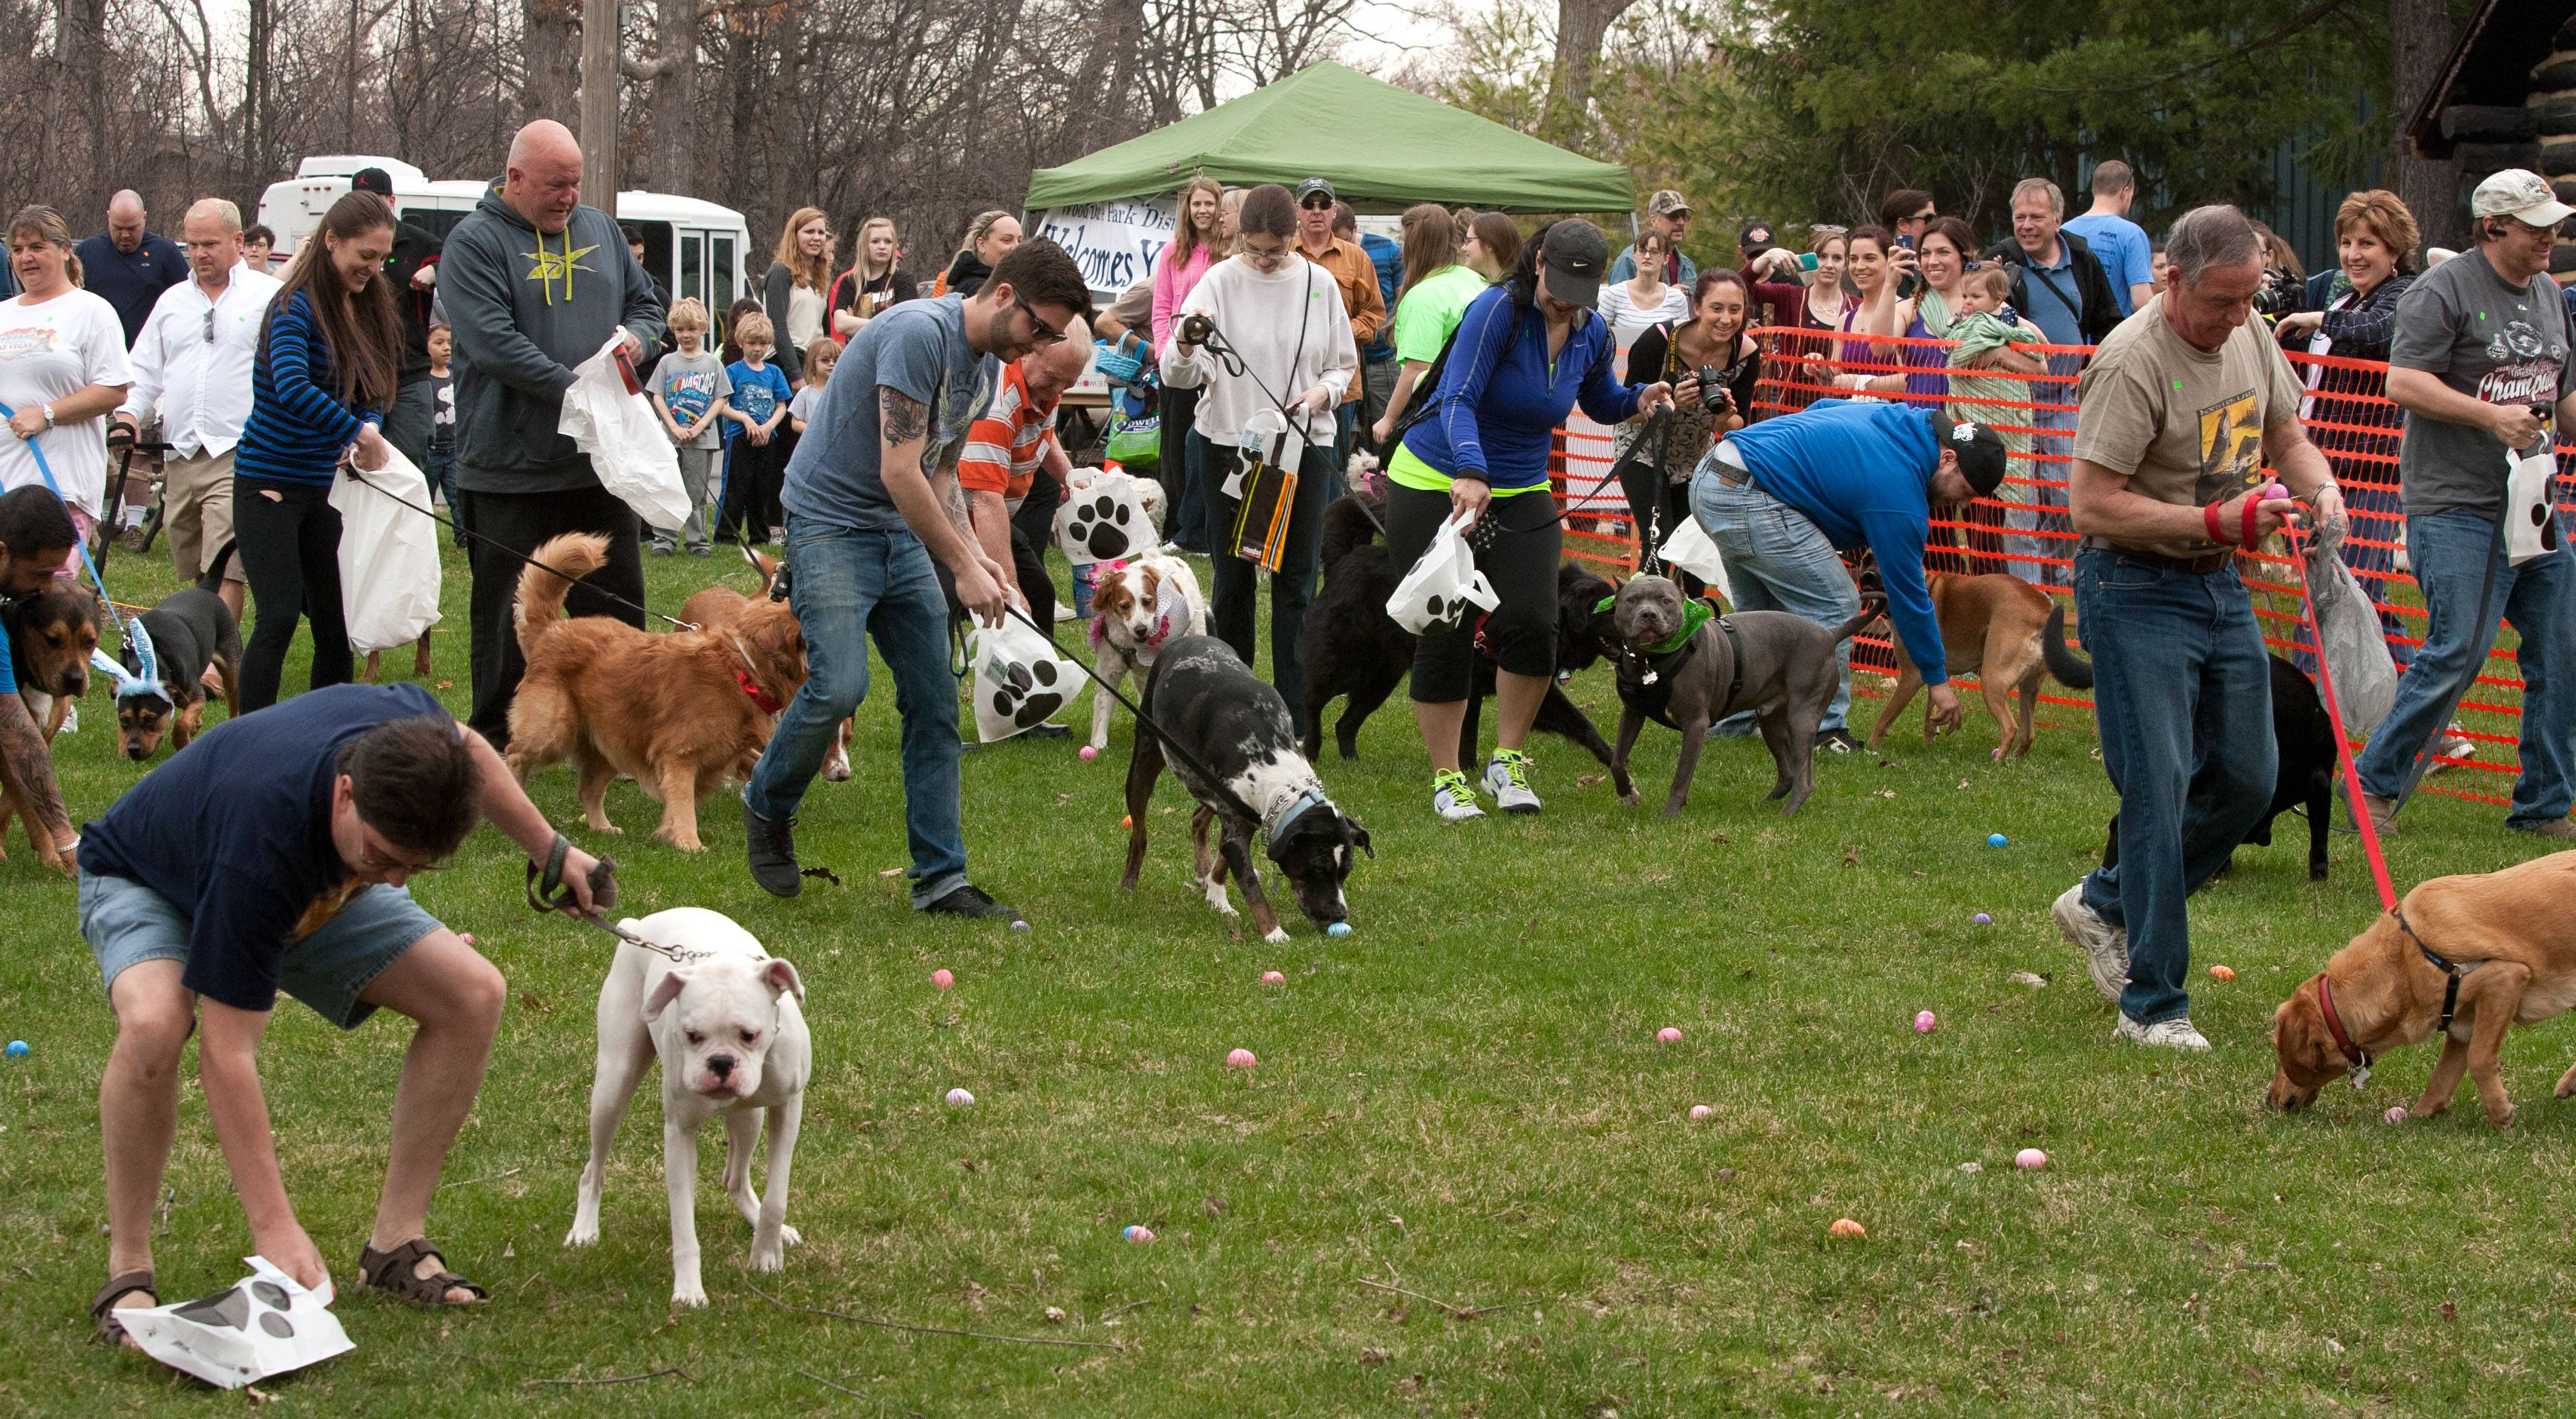 Close to 100 canines and their owner's went on the hunt Sunday for plastic eggs filled with dog treats and other goodies during the sixth annual Doggie Egg Hunt at the Cabin Nature Center White Oaks Dog Park in Wood Dale.